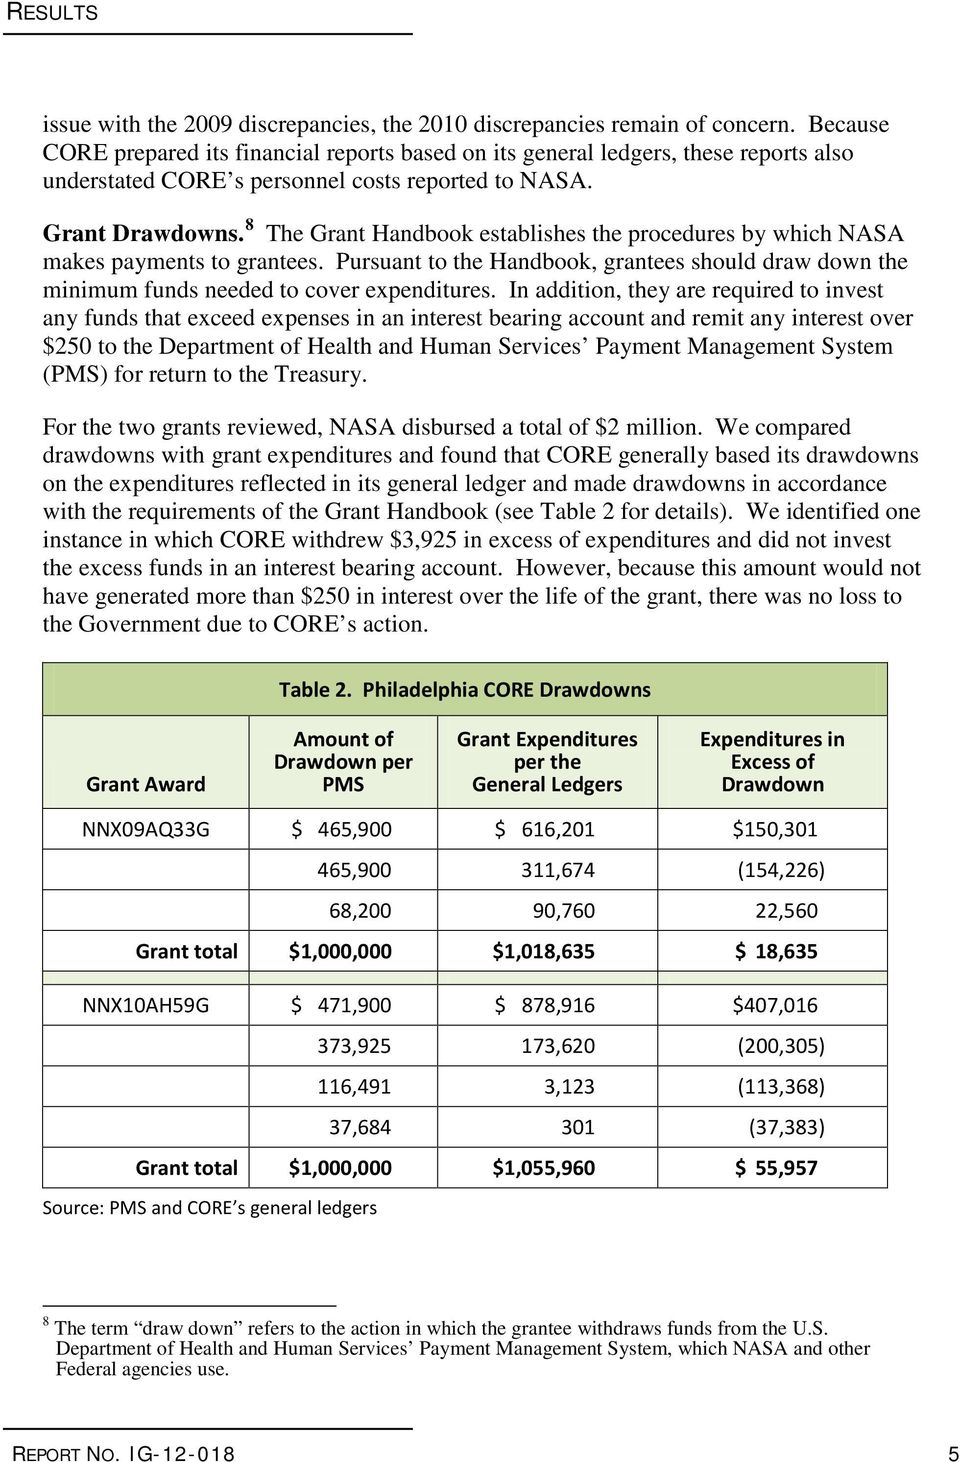 8 The Grant Handbook establishes the procedures by which NASA makes payments to grantees. Pursuant to the Handbook, grantees should draw down the minimum funds needed to cover expenditures.